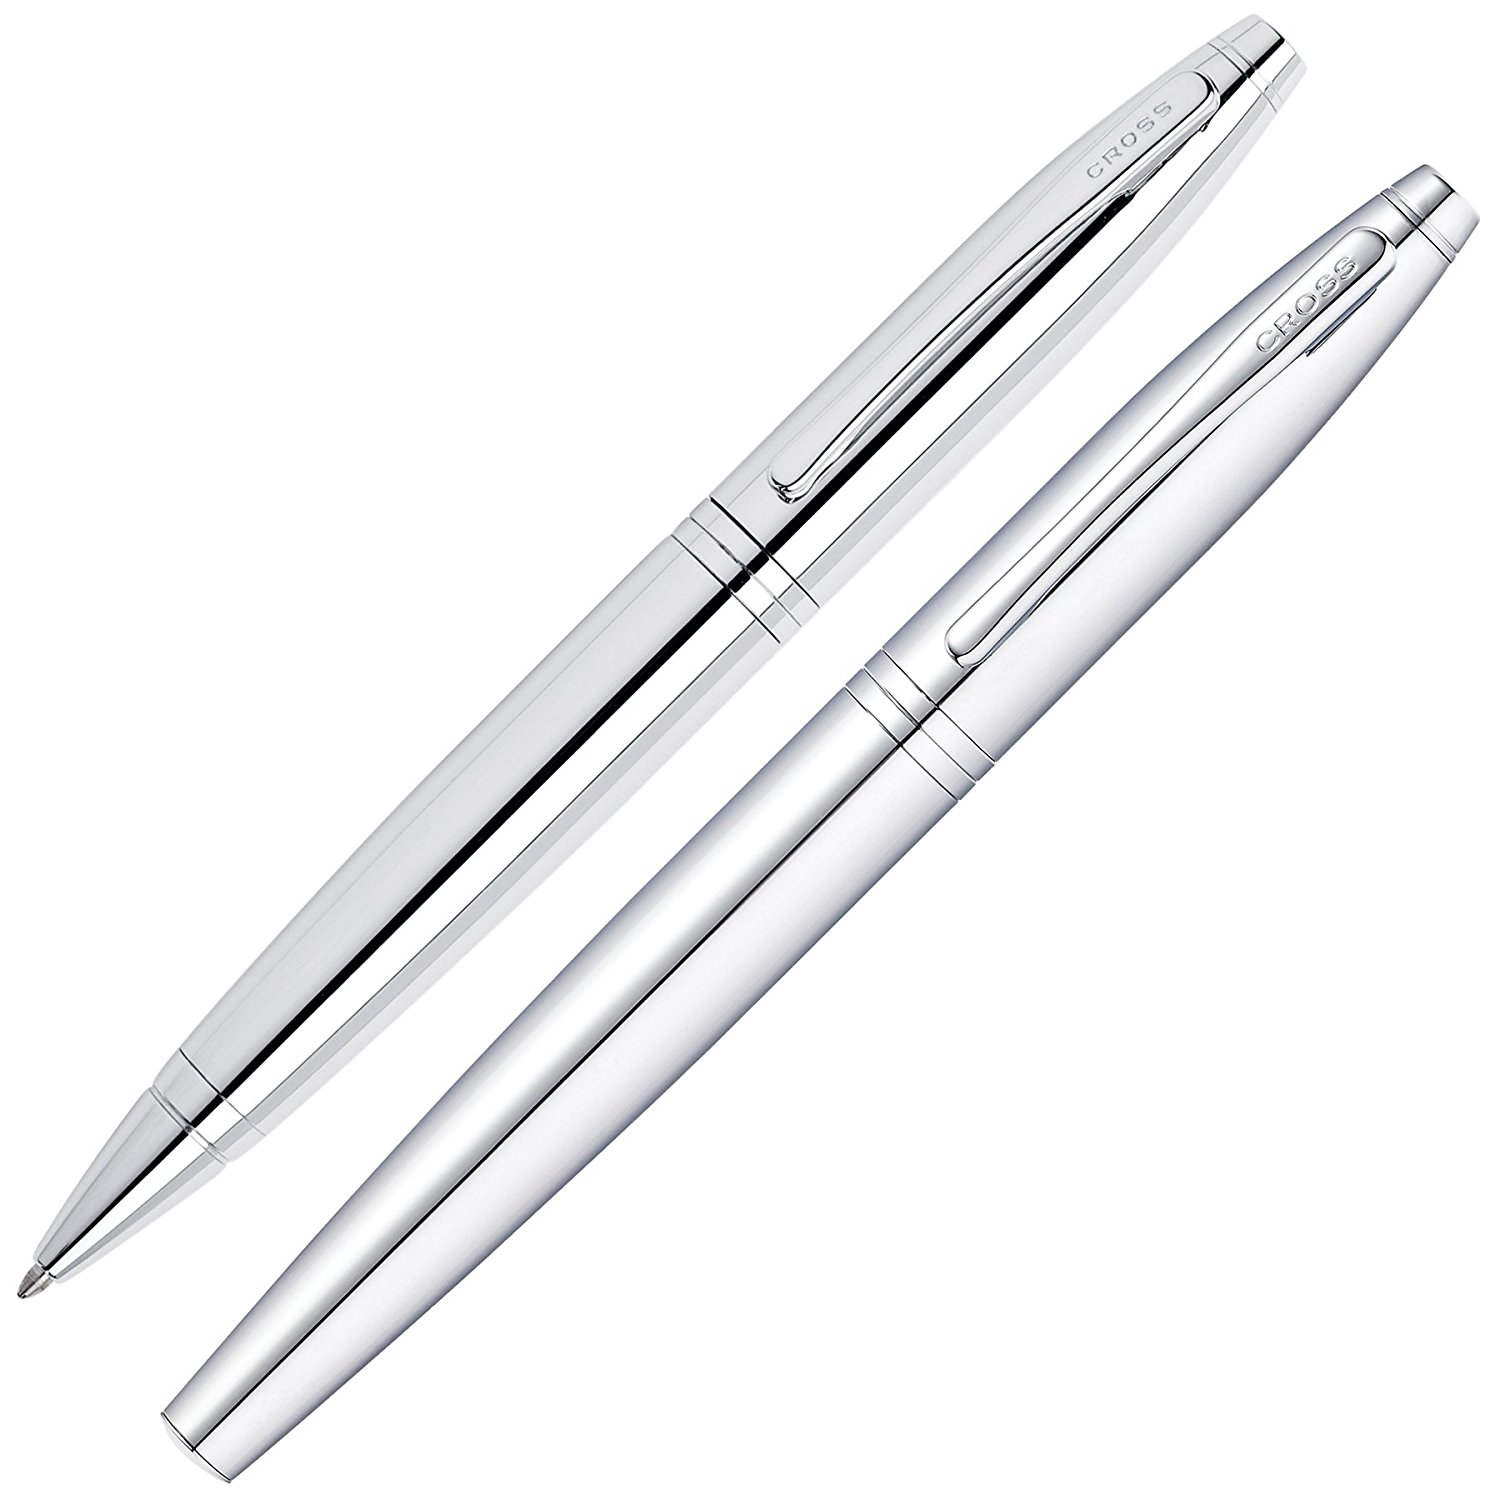 Buy Dayspring Pens | Engraved/Personalized Cross Calais Ballpoint and Rollerball Double Pen Gift Set with Case - Chrome in Cheap Price on m.alibaba.com